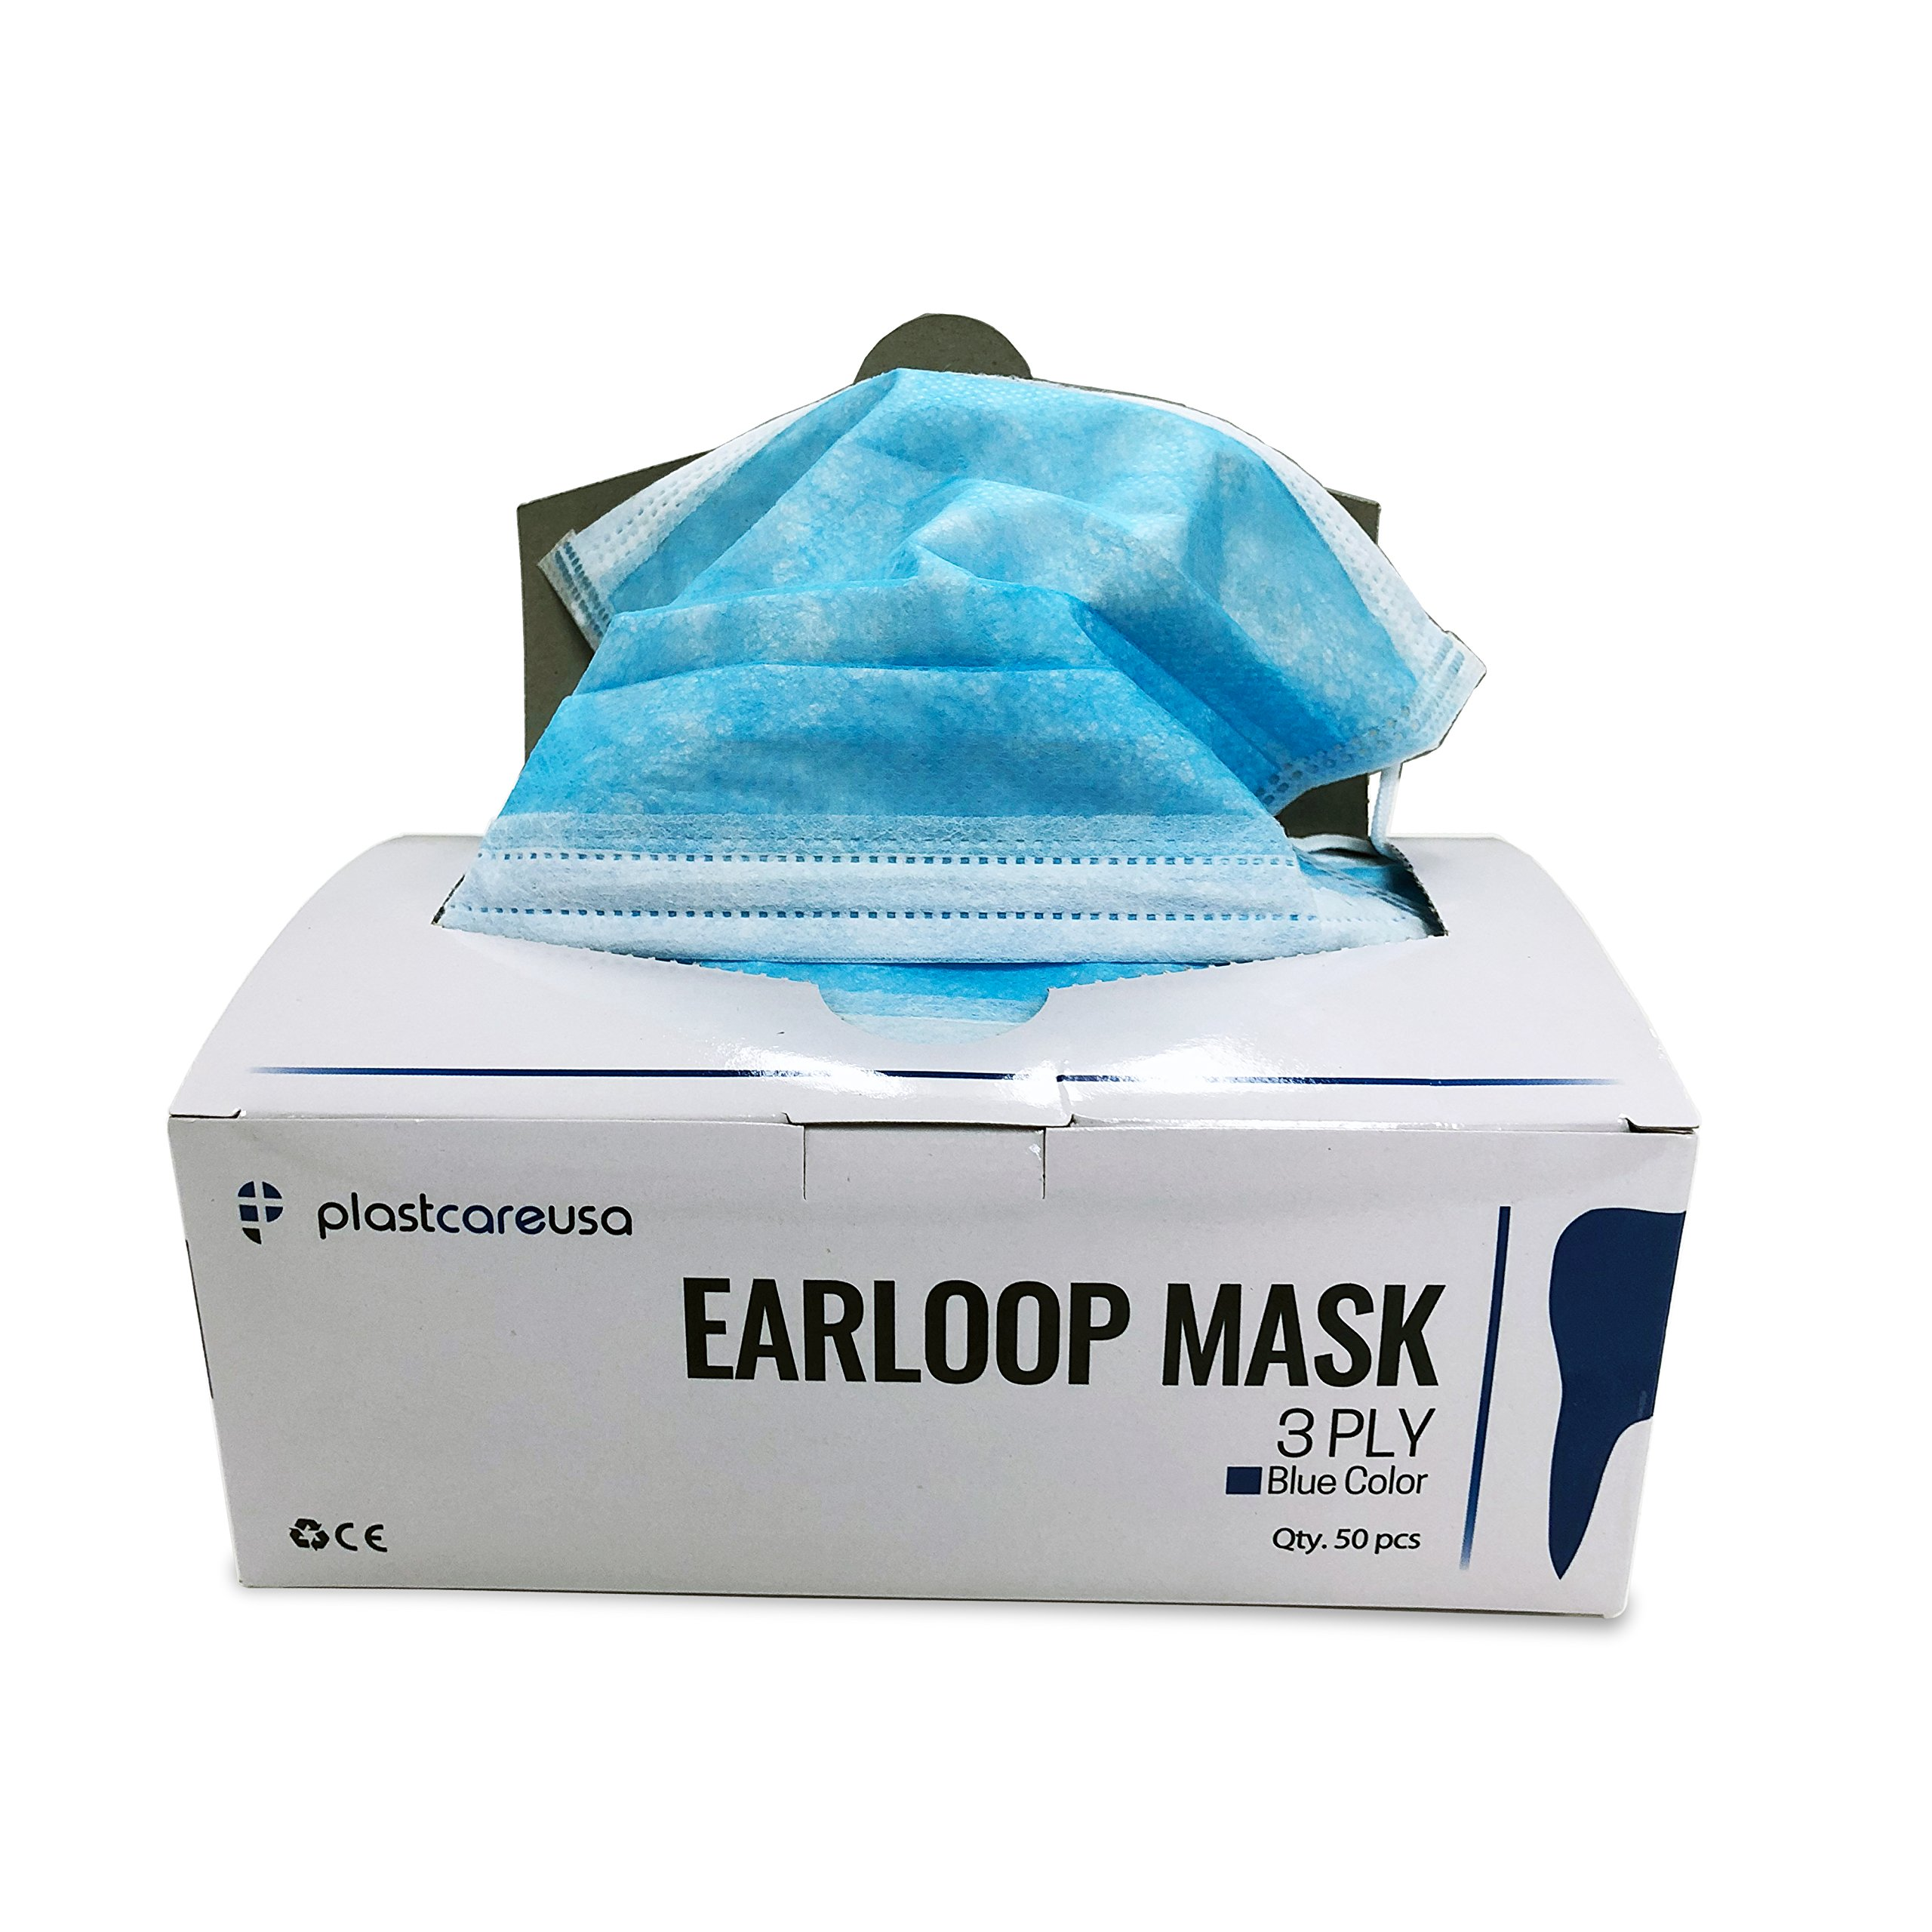 2000 3-Ply Sanitary Medical Grade Ear Loop Masks (Blue) (1 Case) by PlastCare USA